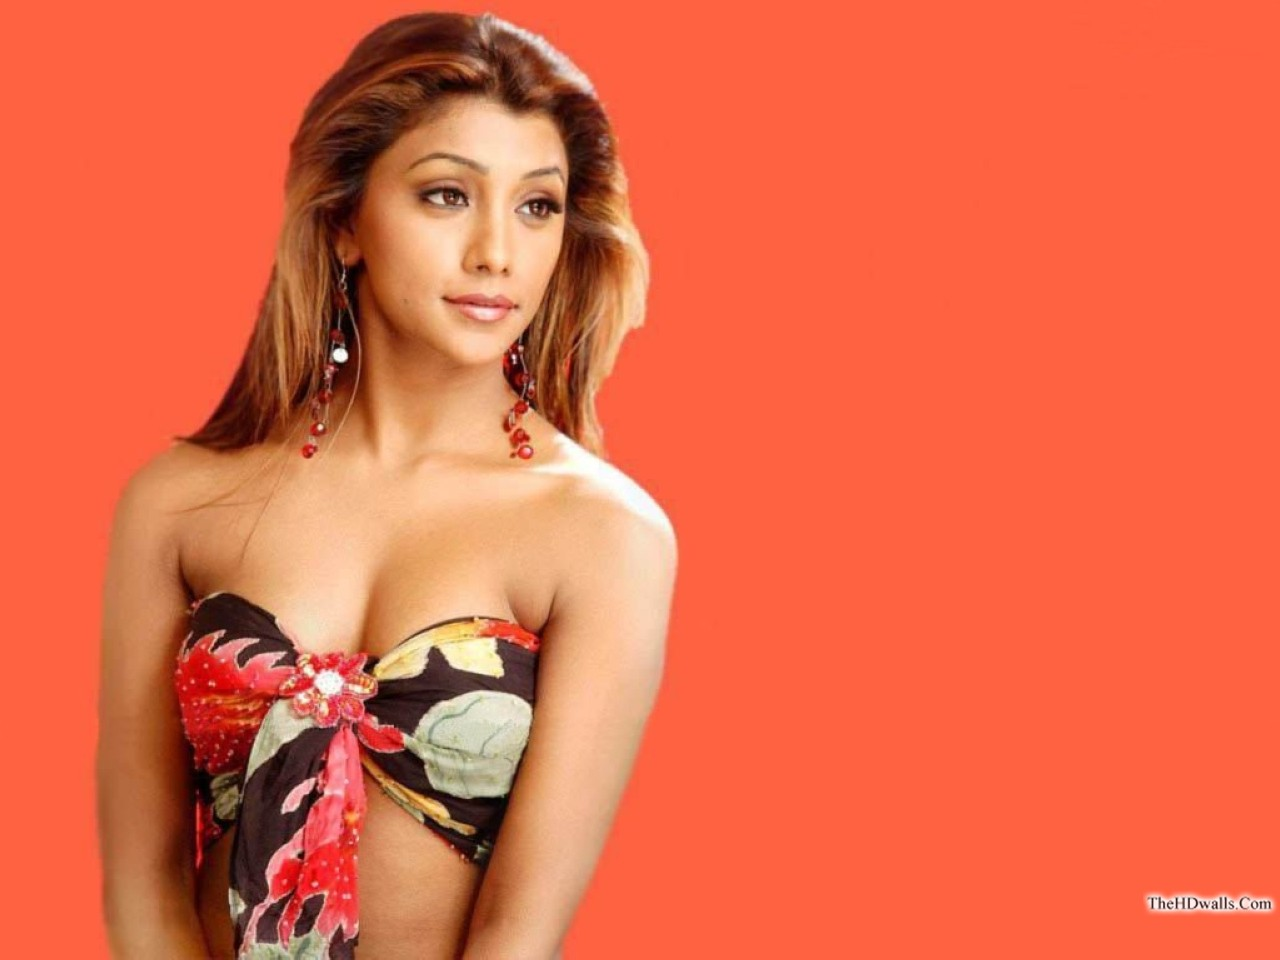 Bollywood Deepal Shaw wallpapers 5 imageS AcfJwkq3